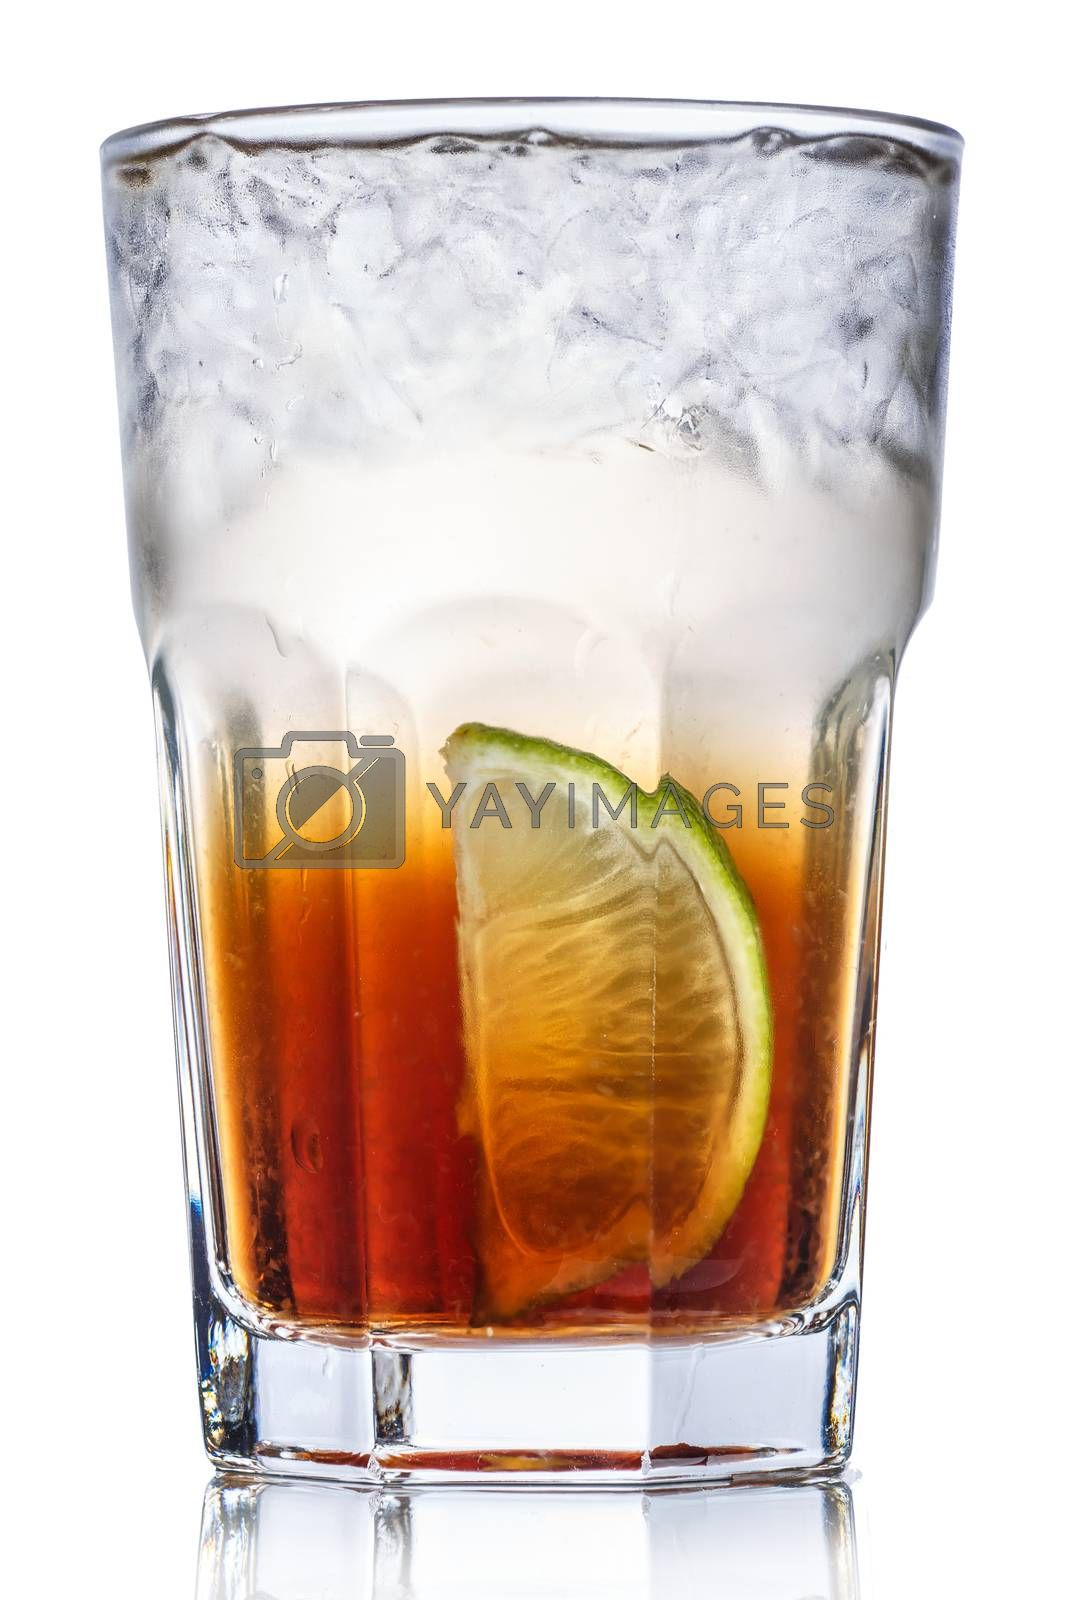 Royalty free image of Long Island Iced Tea by maxsol